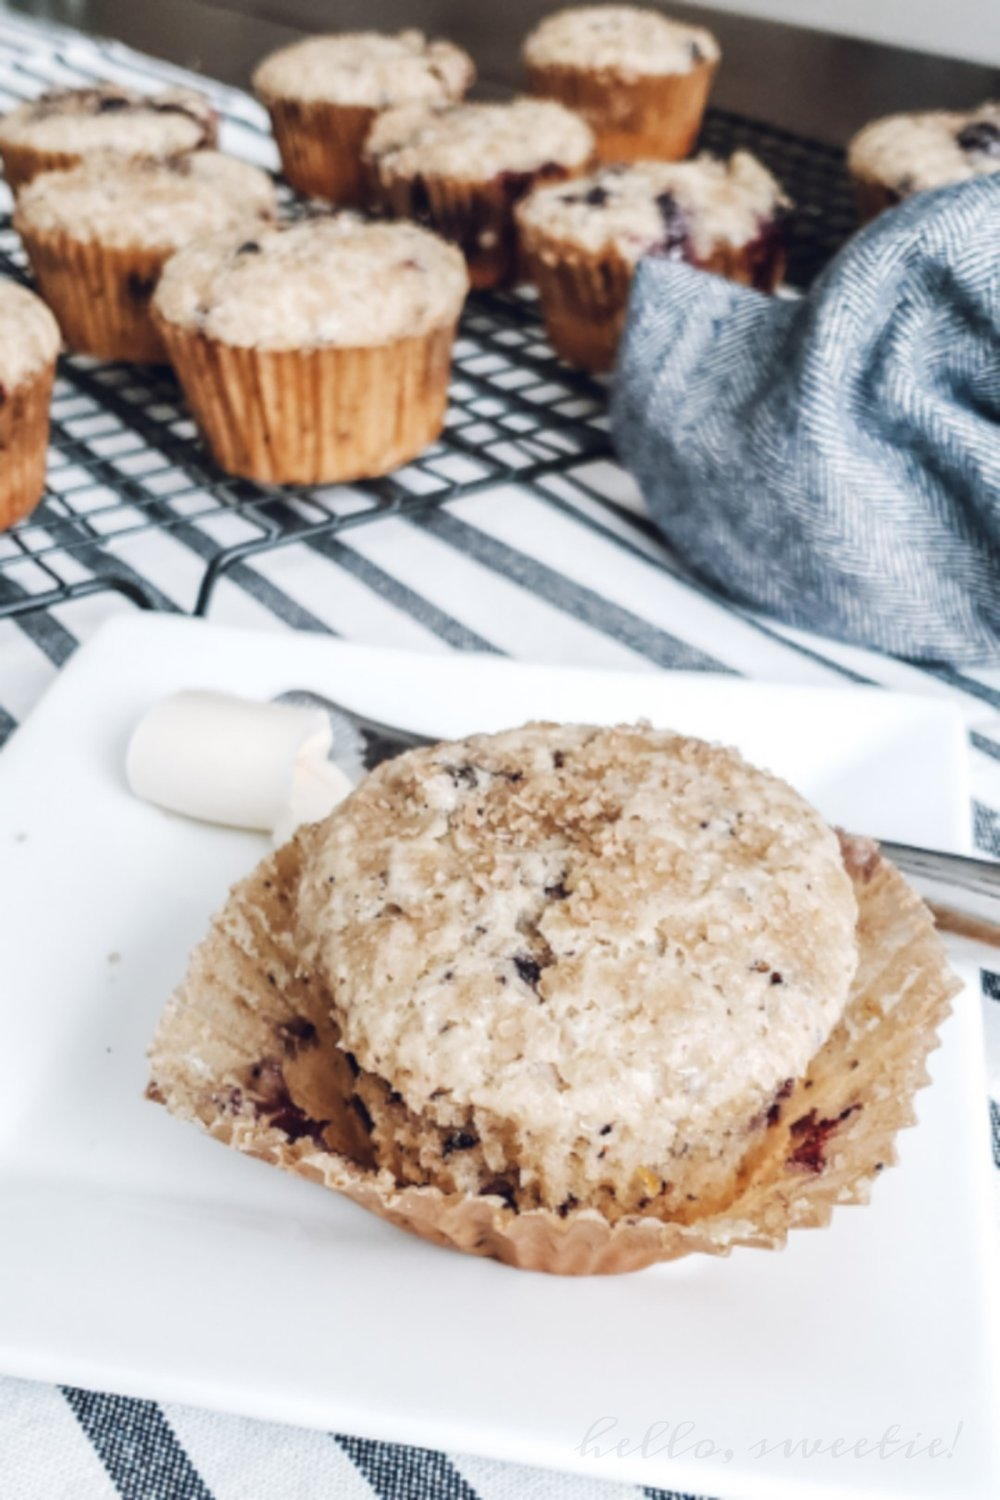 We love to slather that first, still-warm muffin with creamy butter, or a drizzle of honey